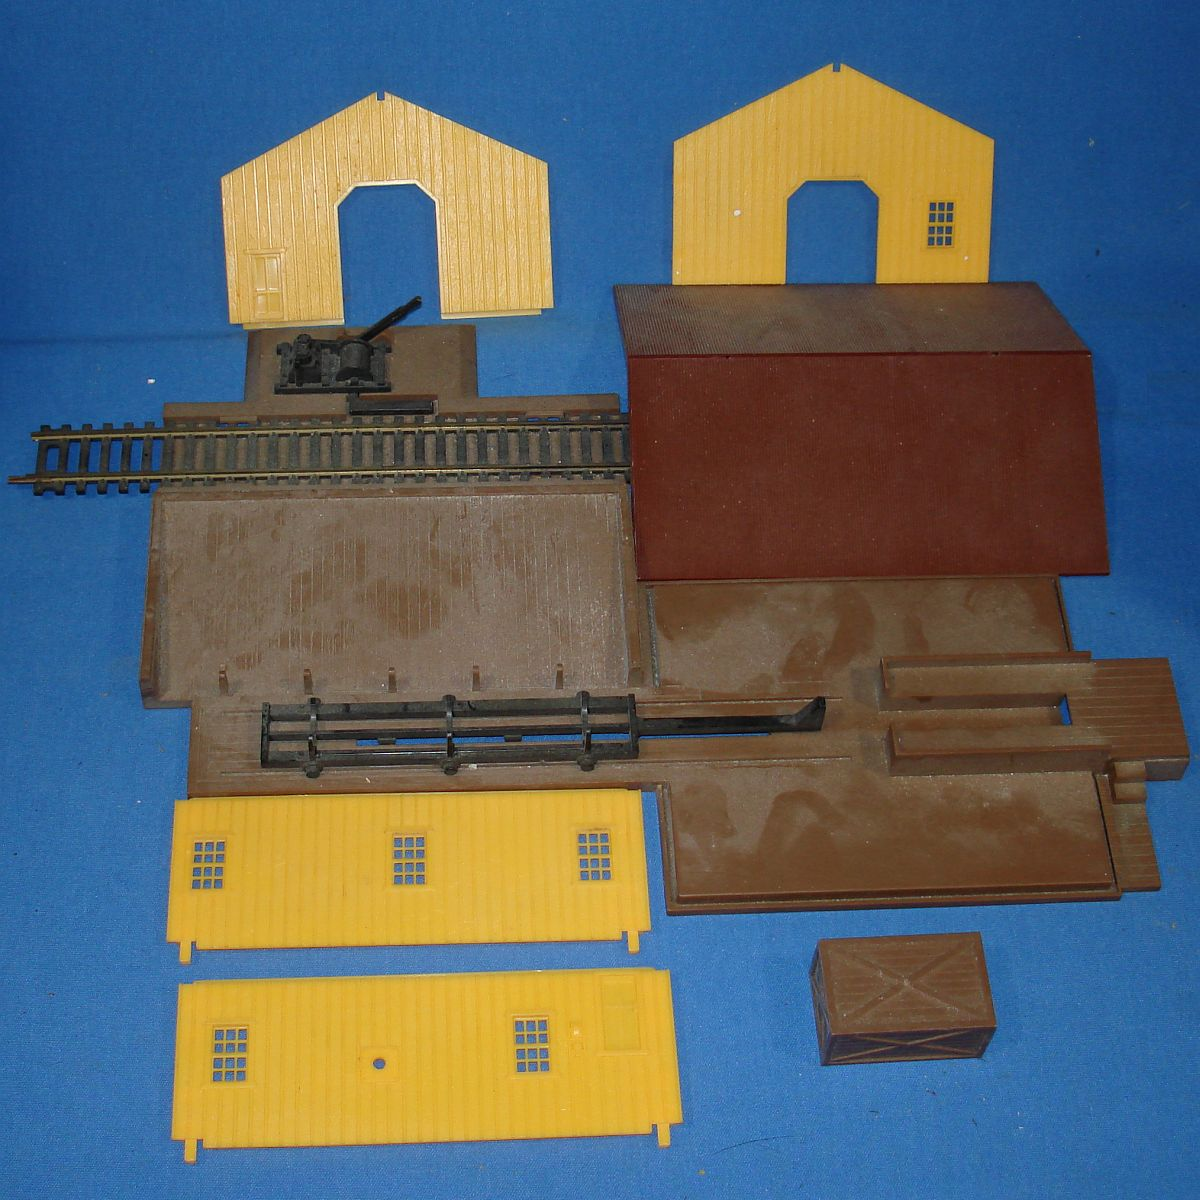 AHM HO Model Railroading Train Track Building Walls